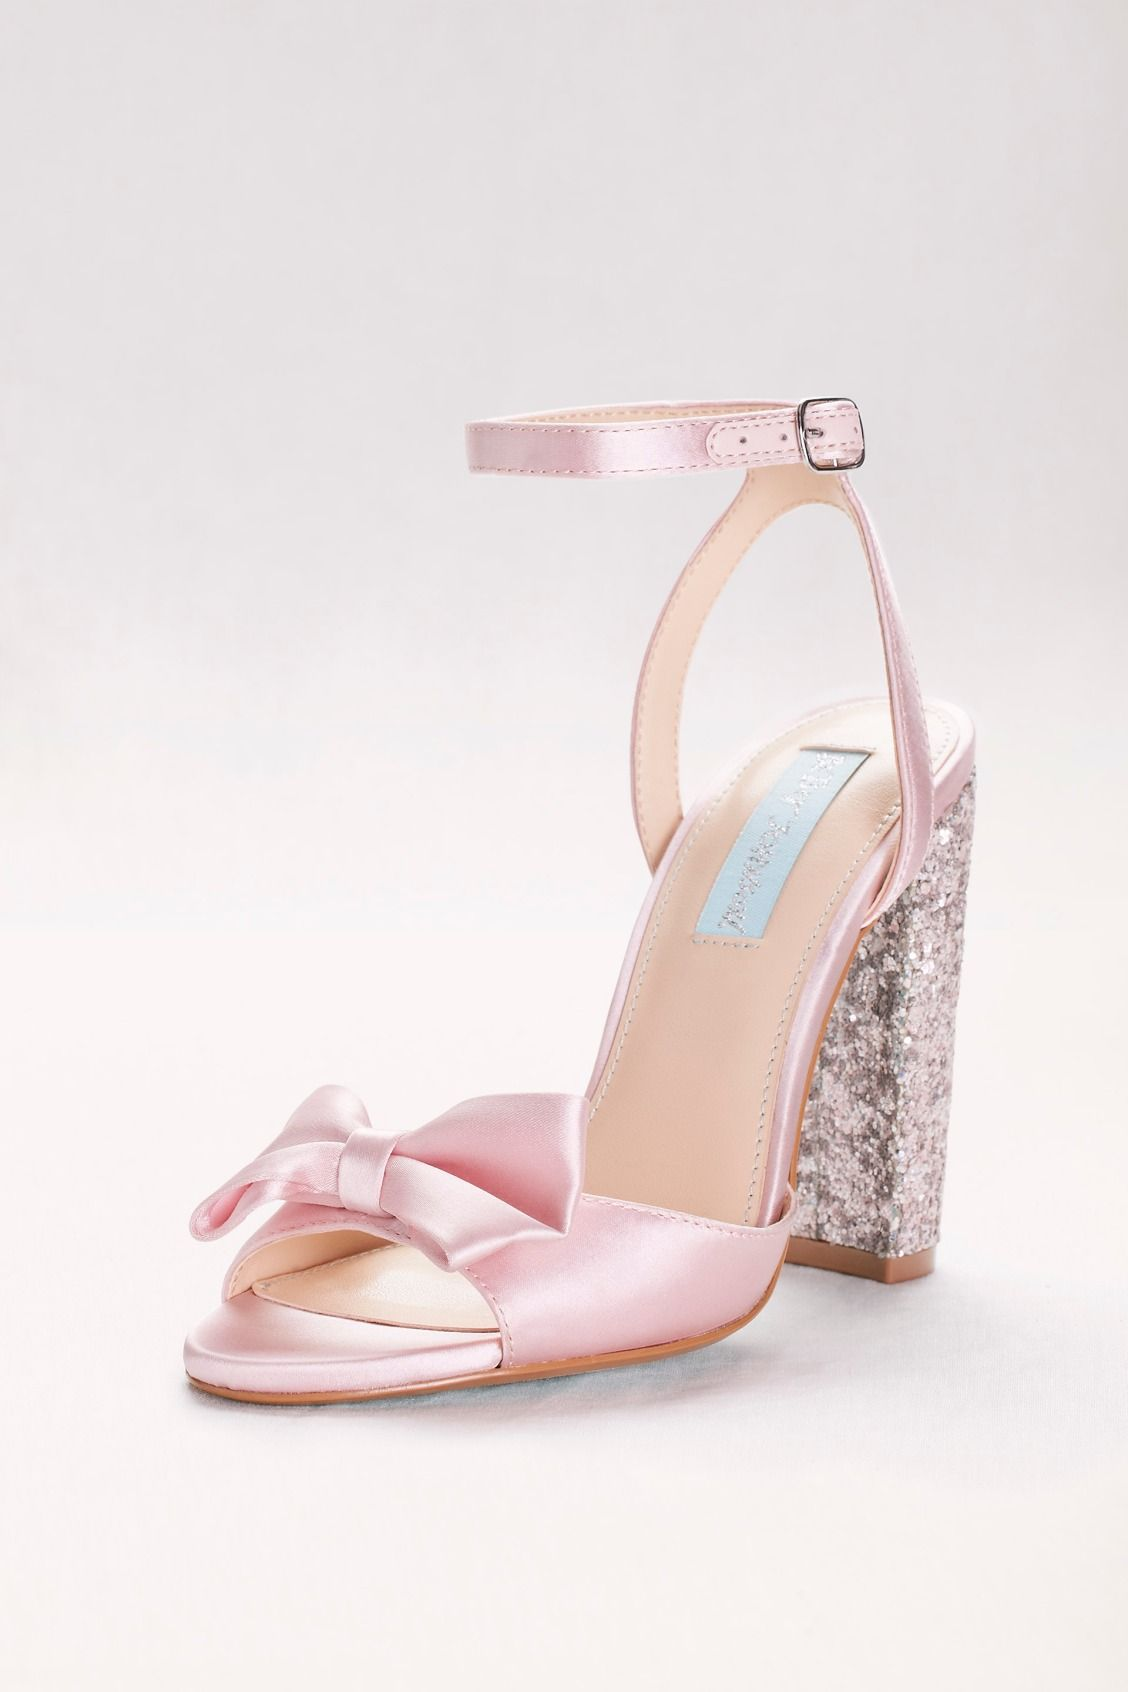 14829f9aea50 Blush Bow-Front Satin Pumps with Glitter Block Heel by Blue by Betsey  Johnson available at David s Bridal